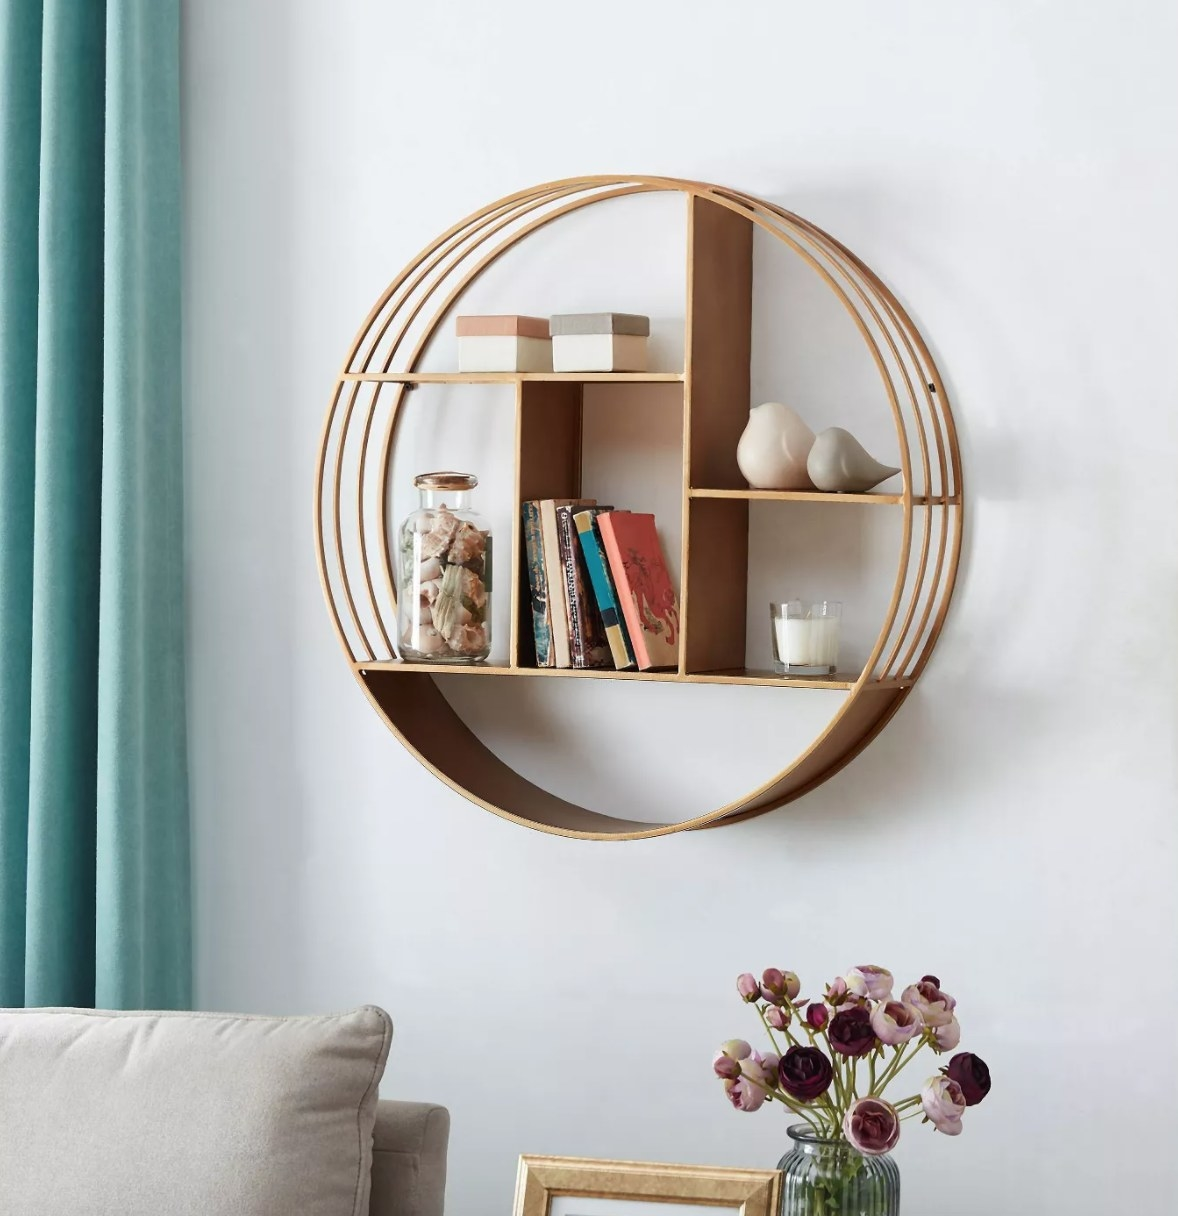 light brown round wall mounted shelving unit